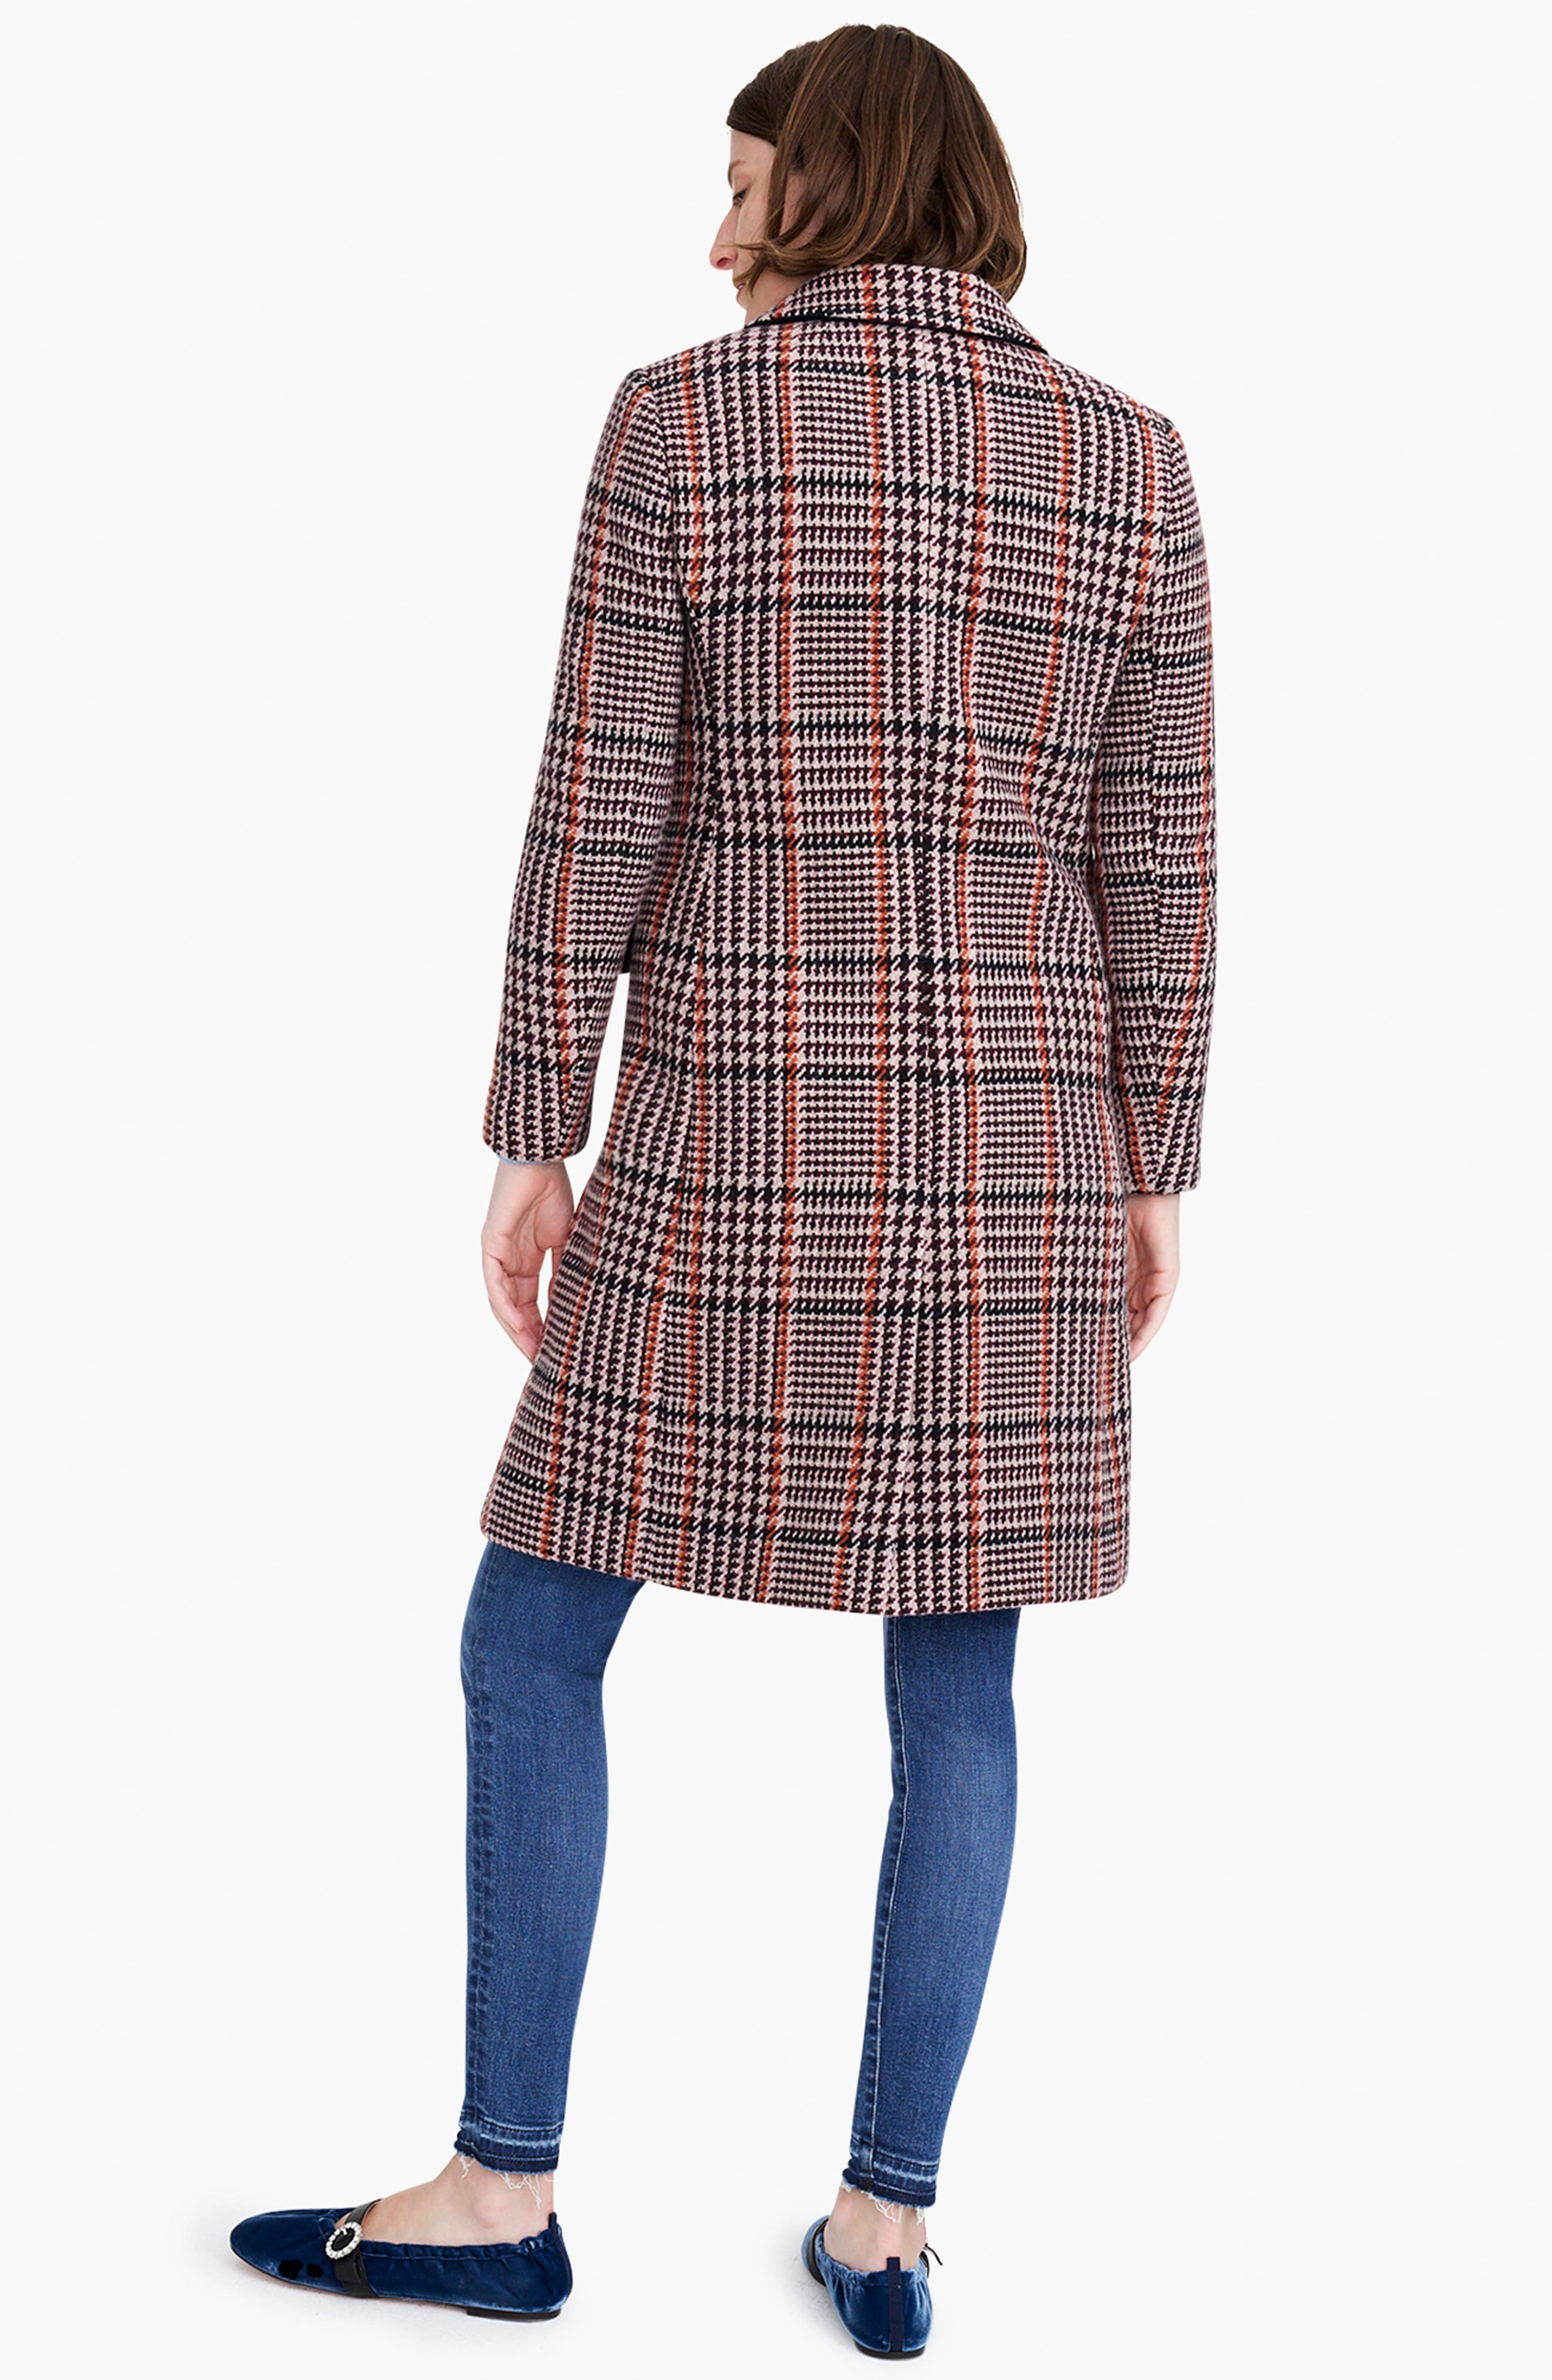 J.CREW, Plaid Single Breasted Topcoat, Alternate thumbnail 8, color, 600